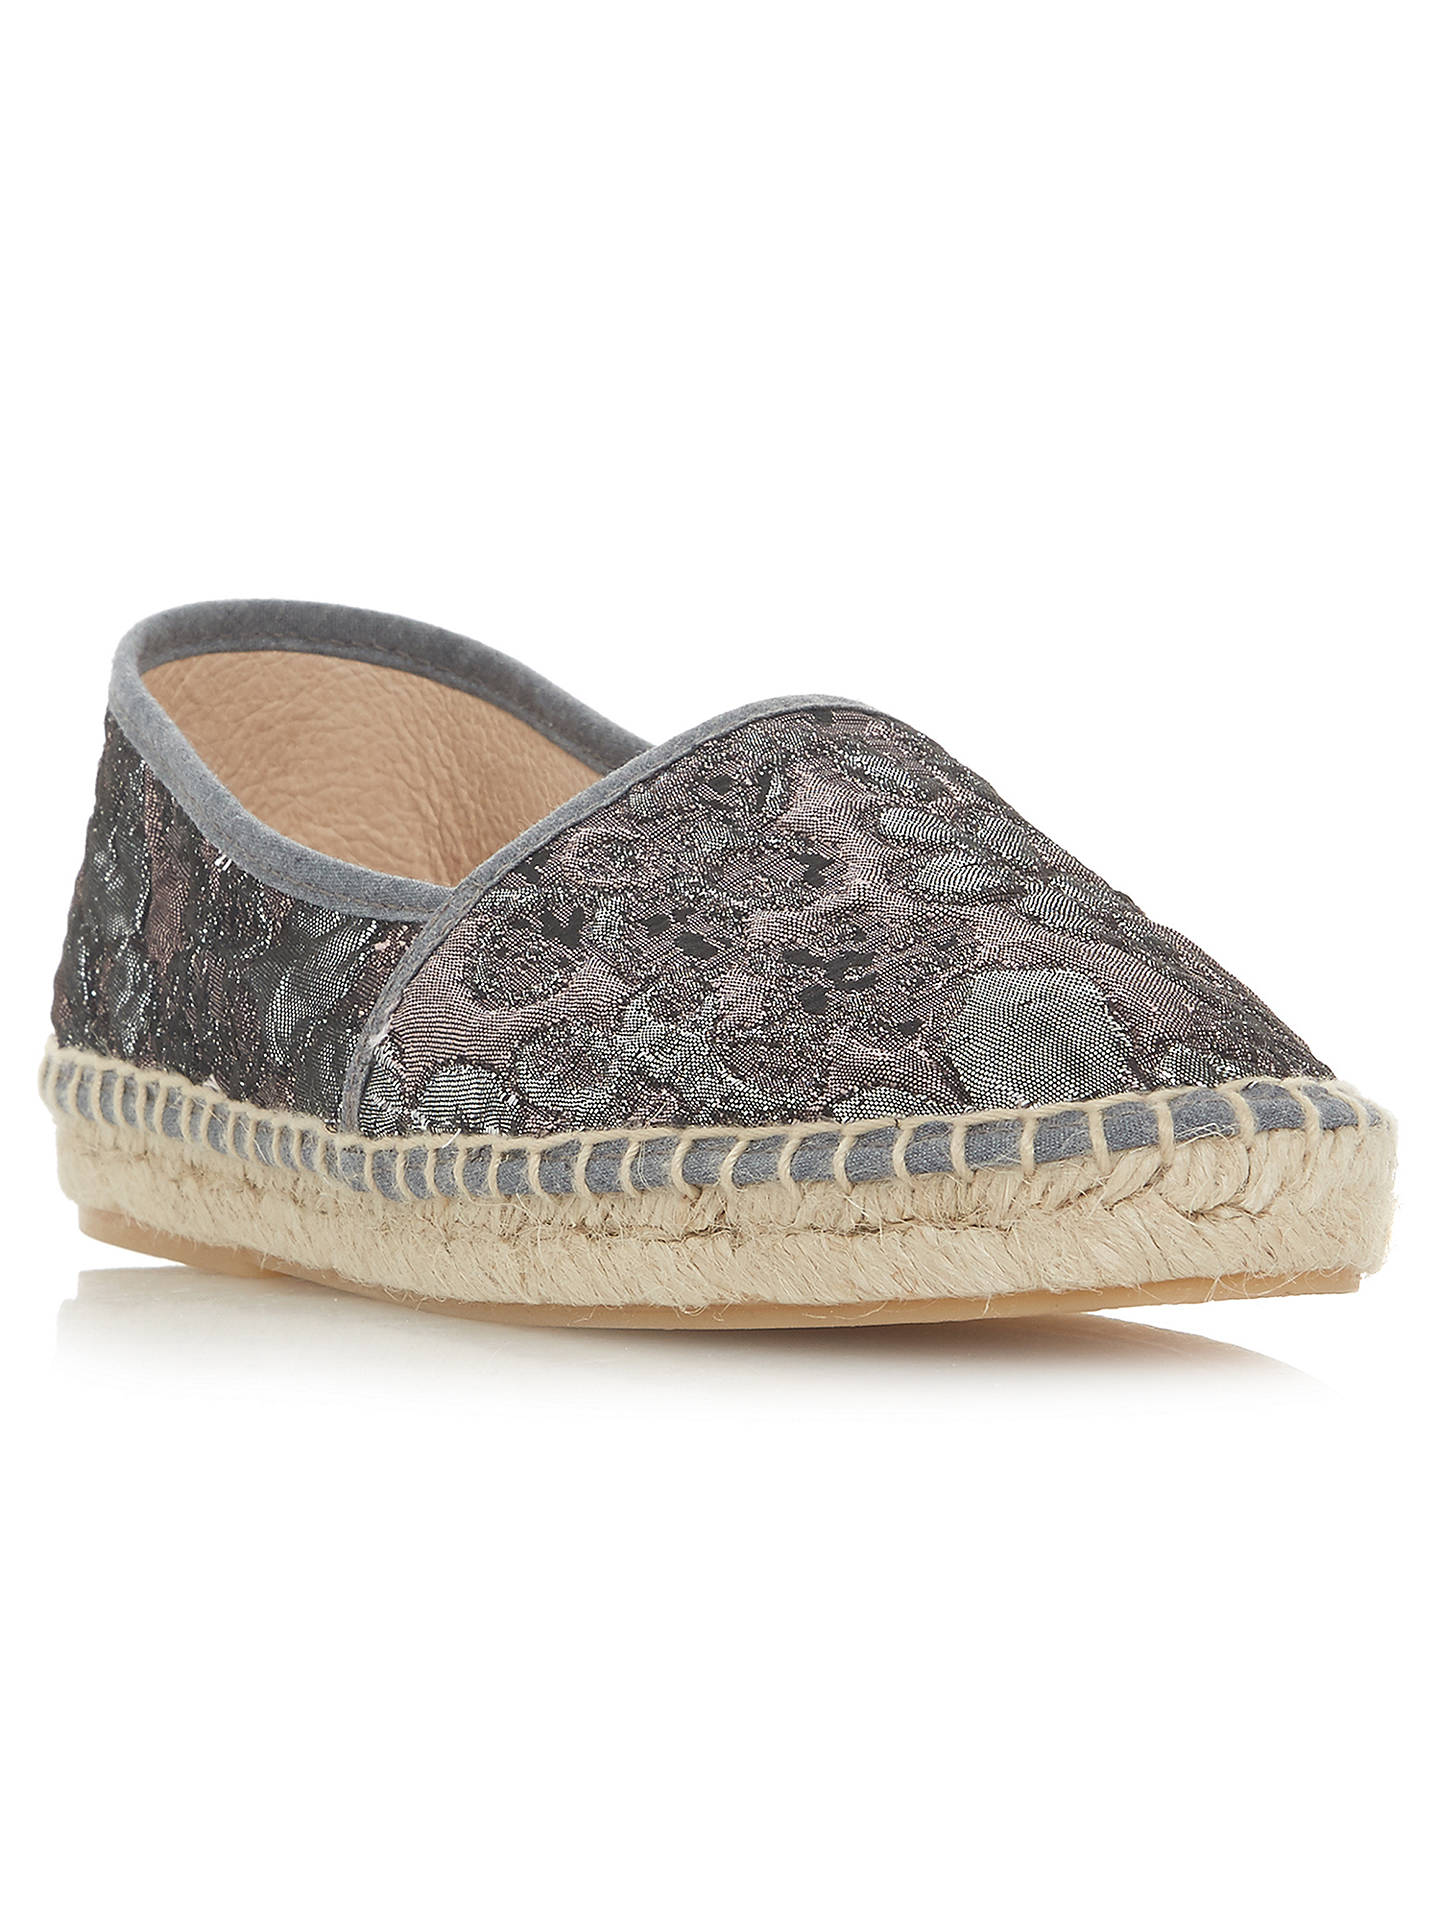 Buy Bertie Glaci Floral Espadrilles, Grey, 3 Online at johnlewis.com